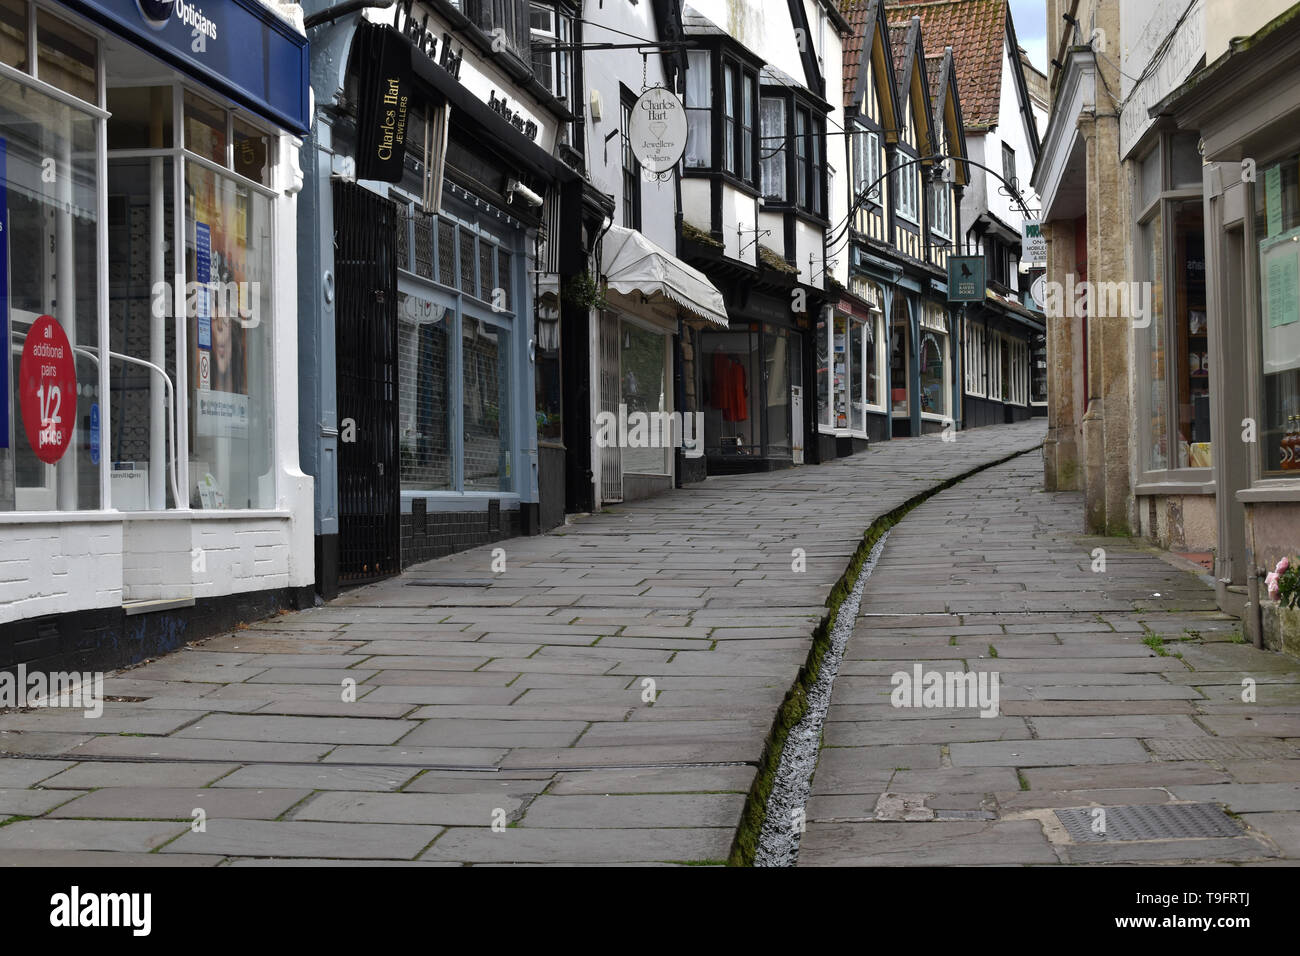 Cheap Street, a medieval street in Frome, UK - Stock Image